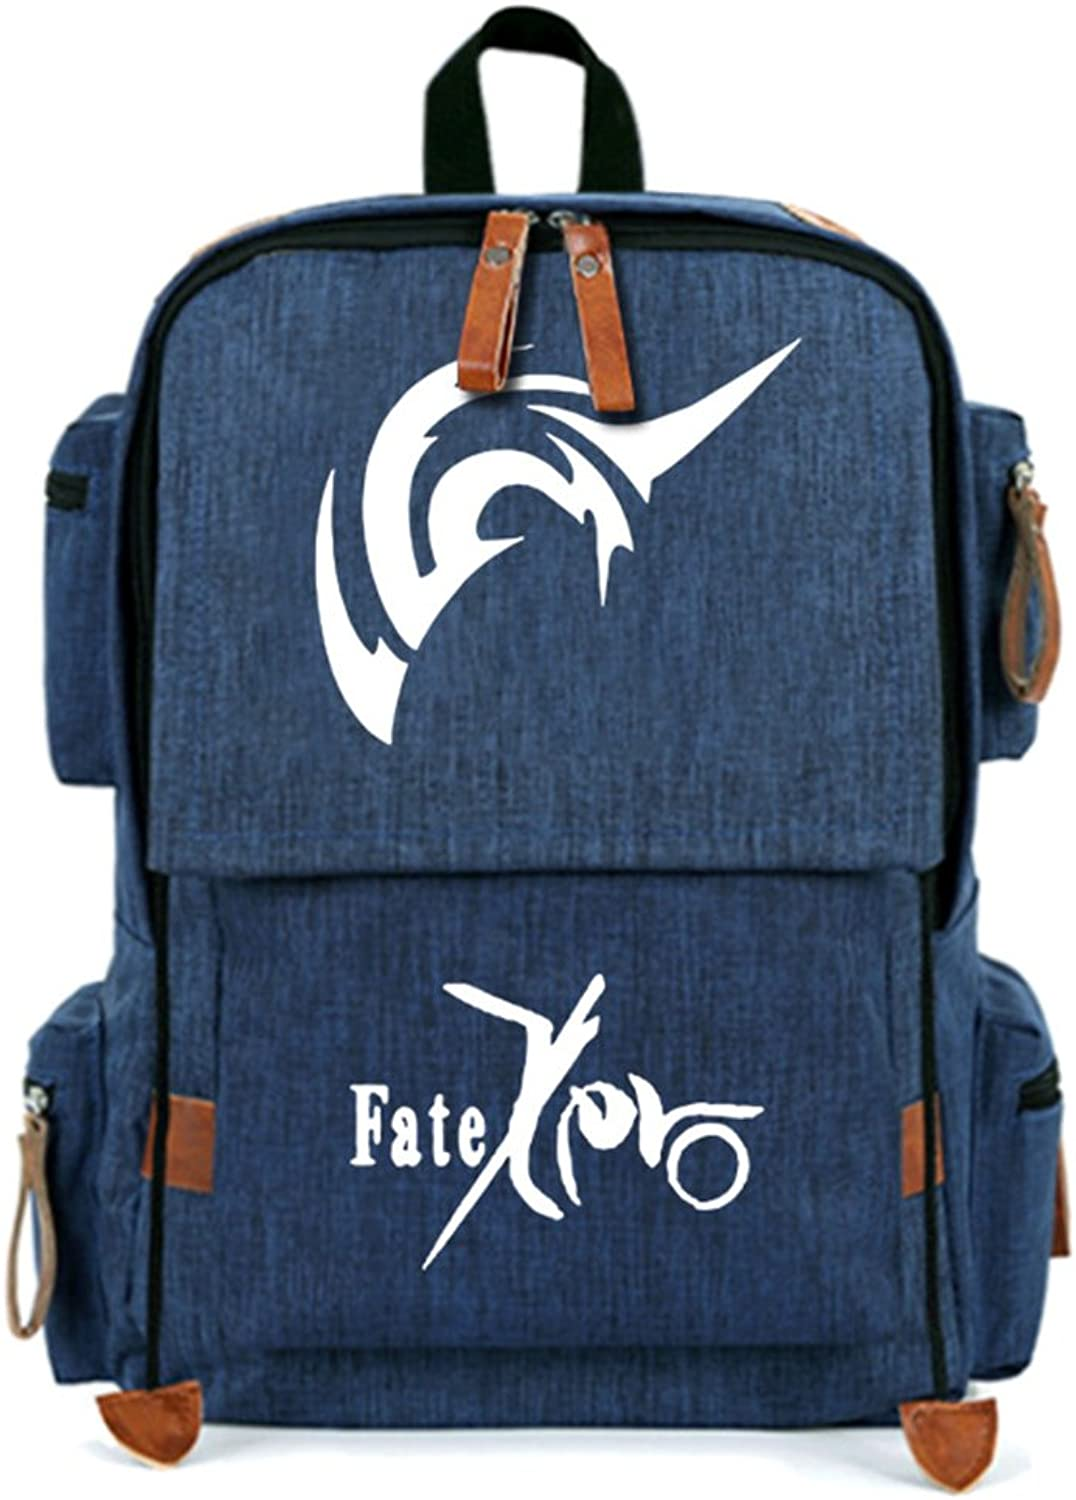 Gumstyle Fate Zero Students Anime Canvas Backpack Laptop Bag Knapsack for Boys Girls Navy 3